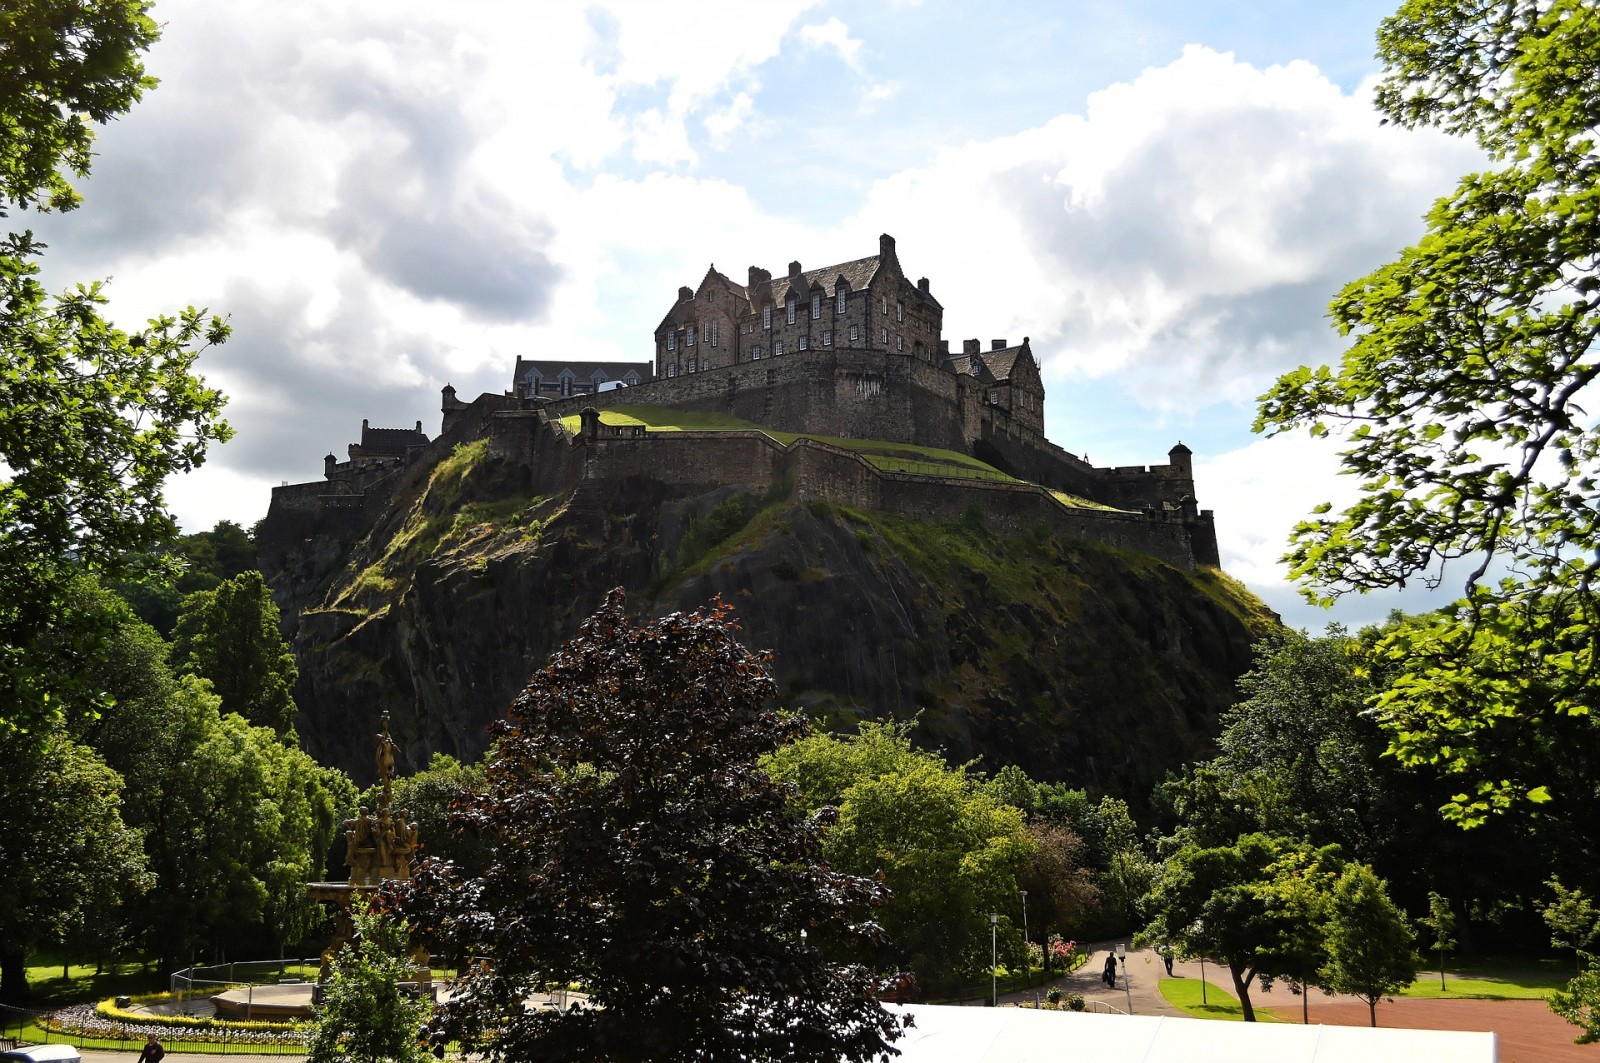 Edinburgh Castle, Scotland, Uk, Pixabay.com